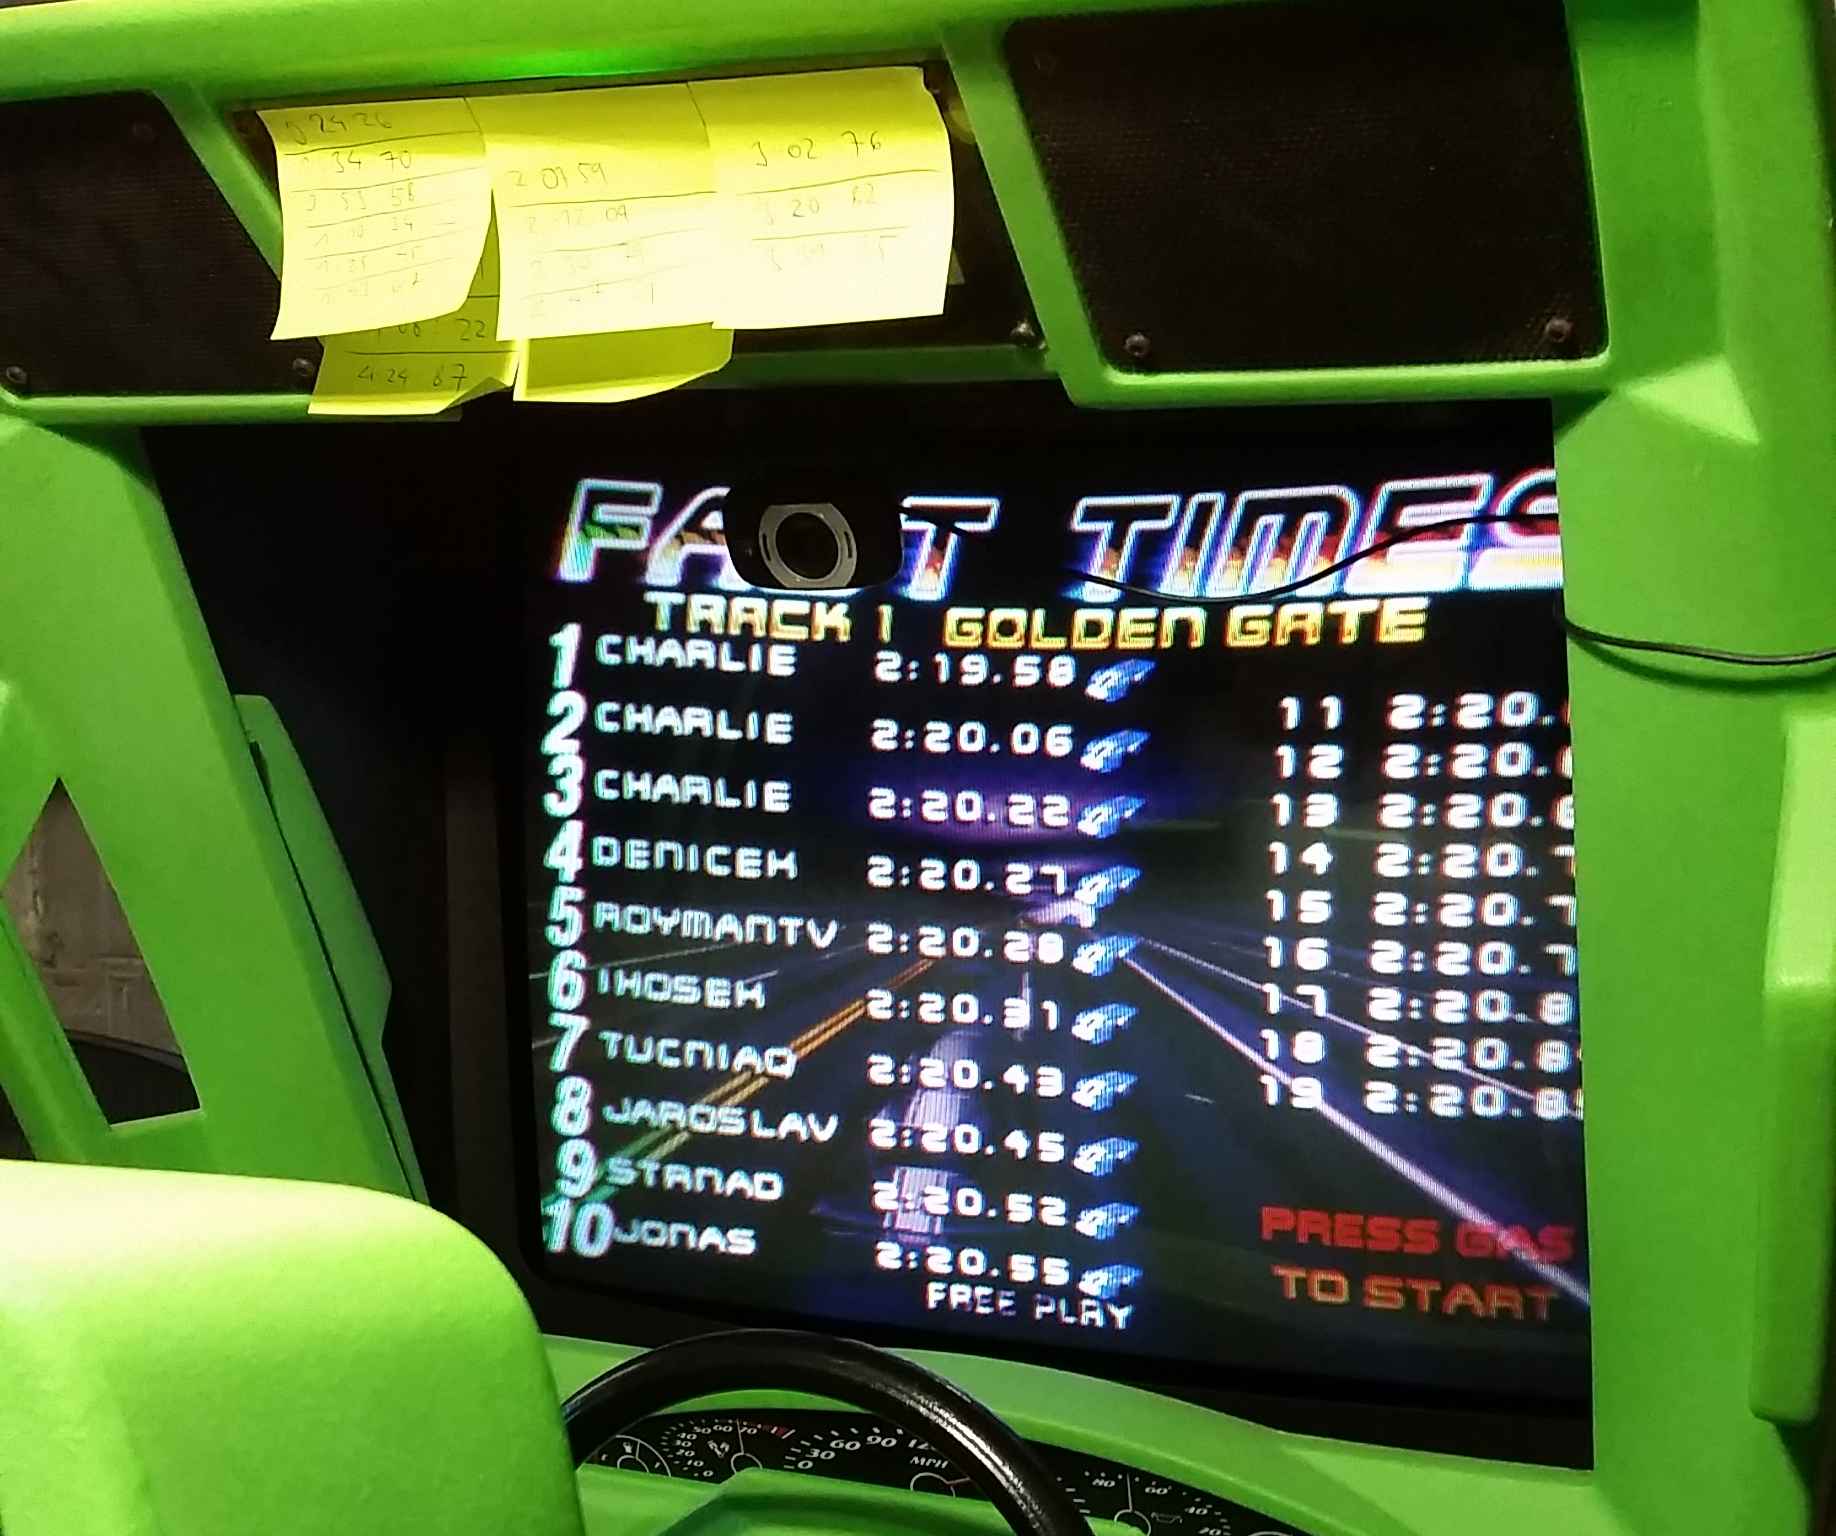 San Francisco Rush: The Rock [Track 1] time of 0:02:19.58